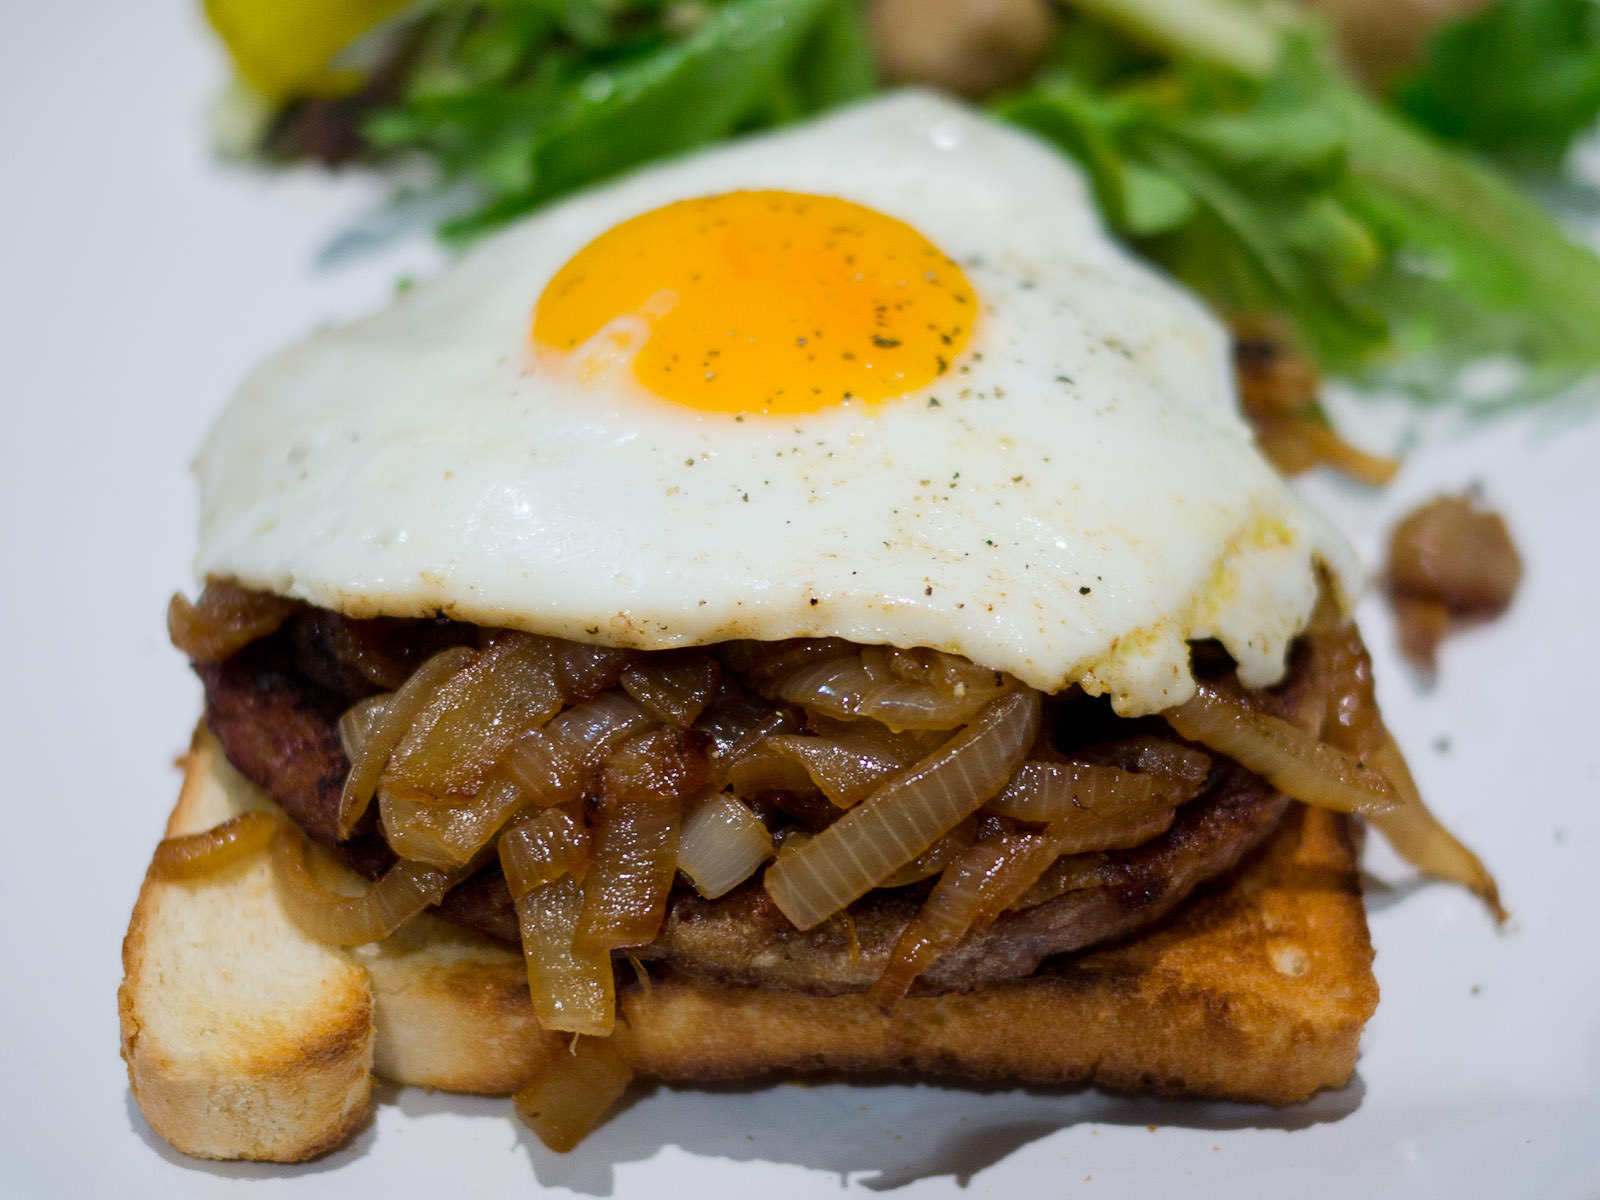 Fried egg, onions and burger pattie on toast with pickles and green salad